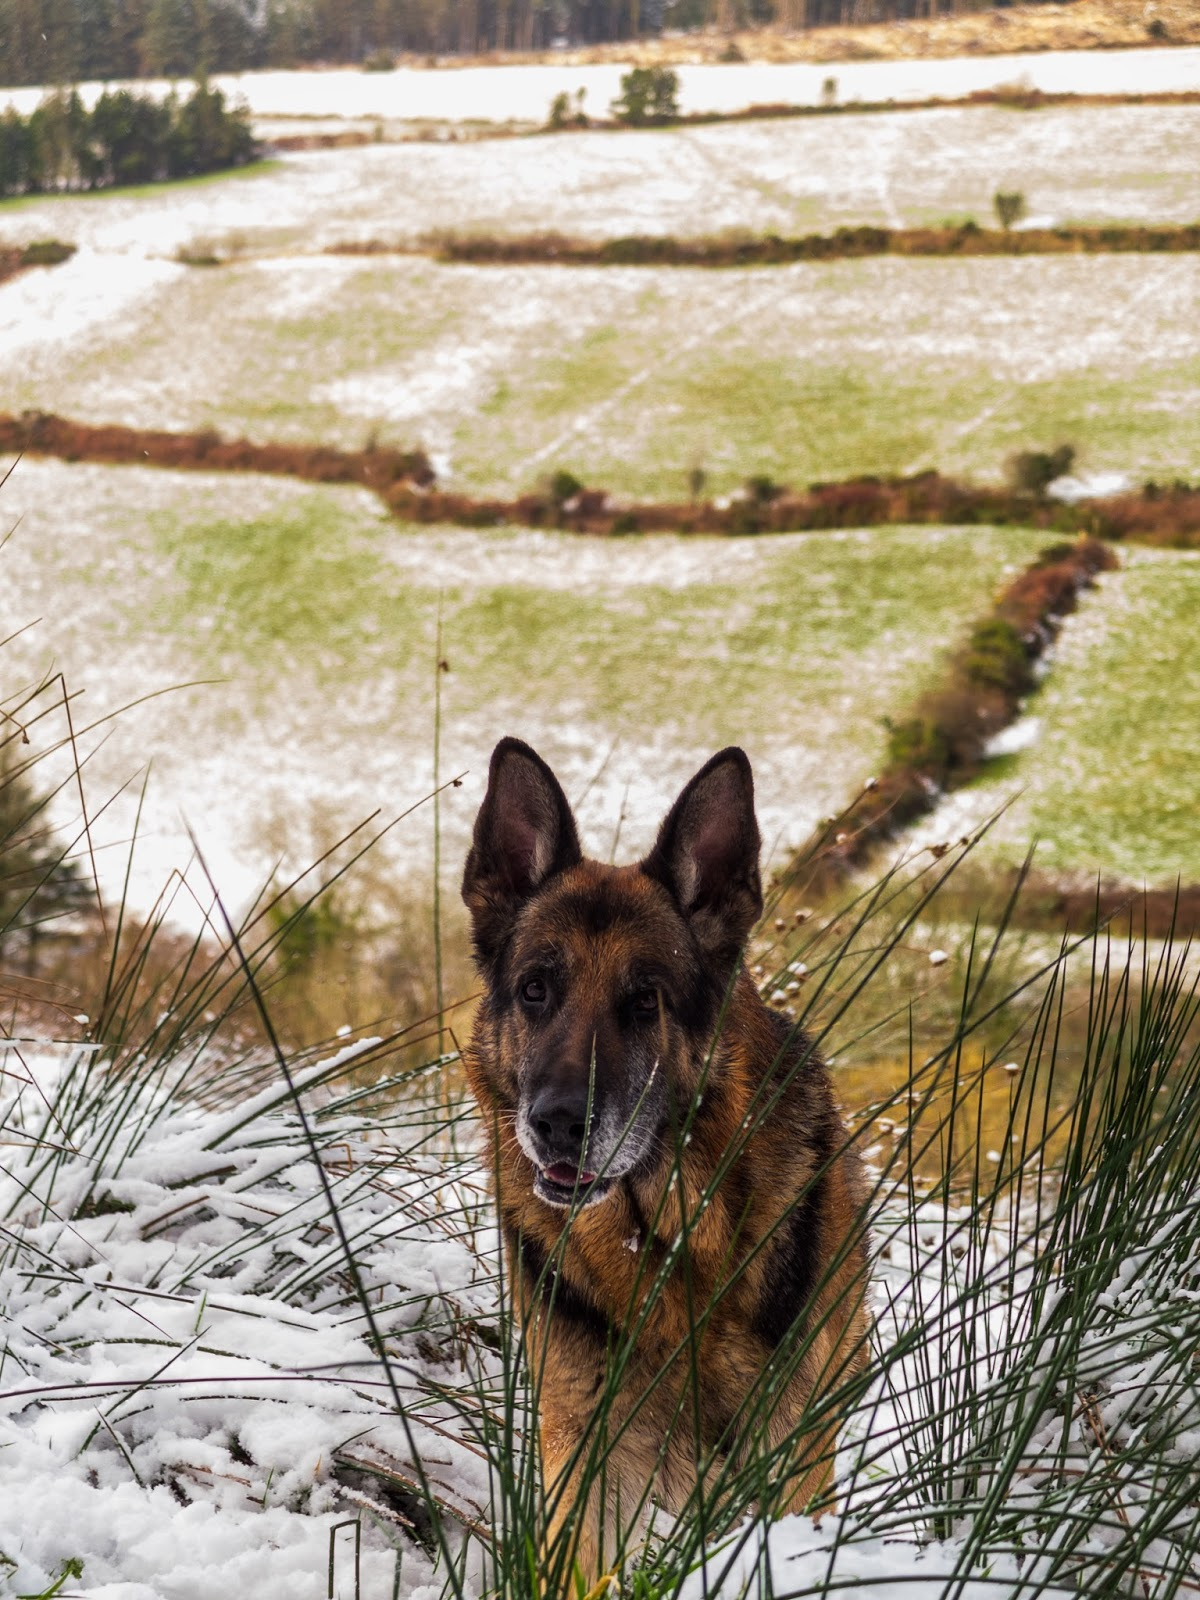 A German Shepherd climbing up a hill in a mountain valley in the snow.